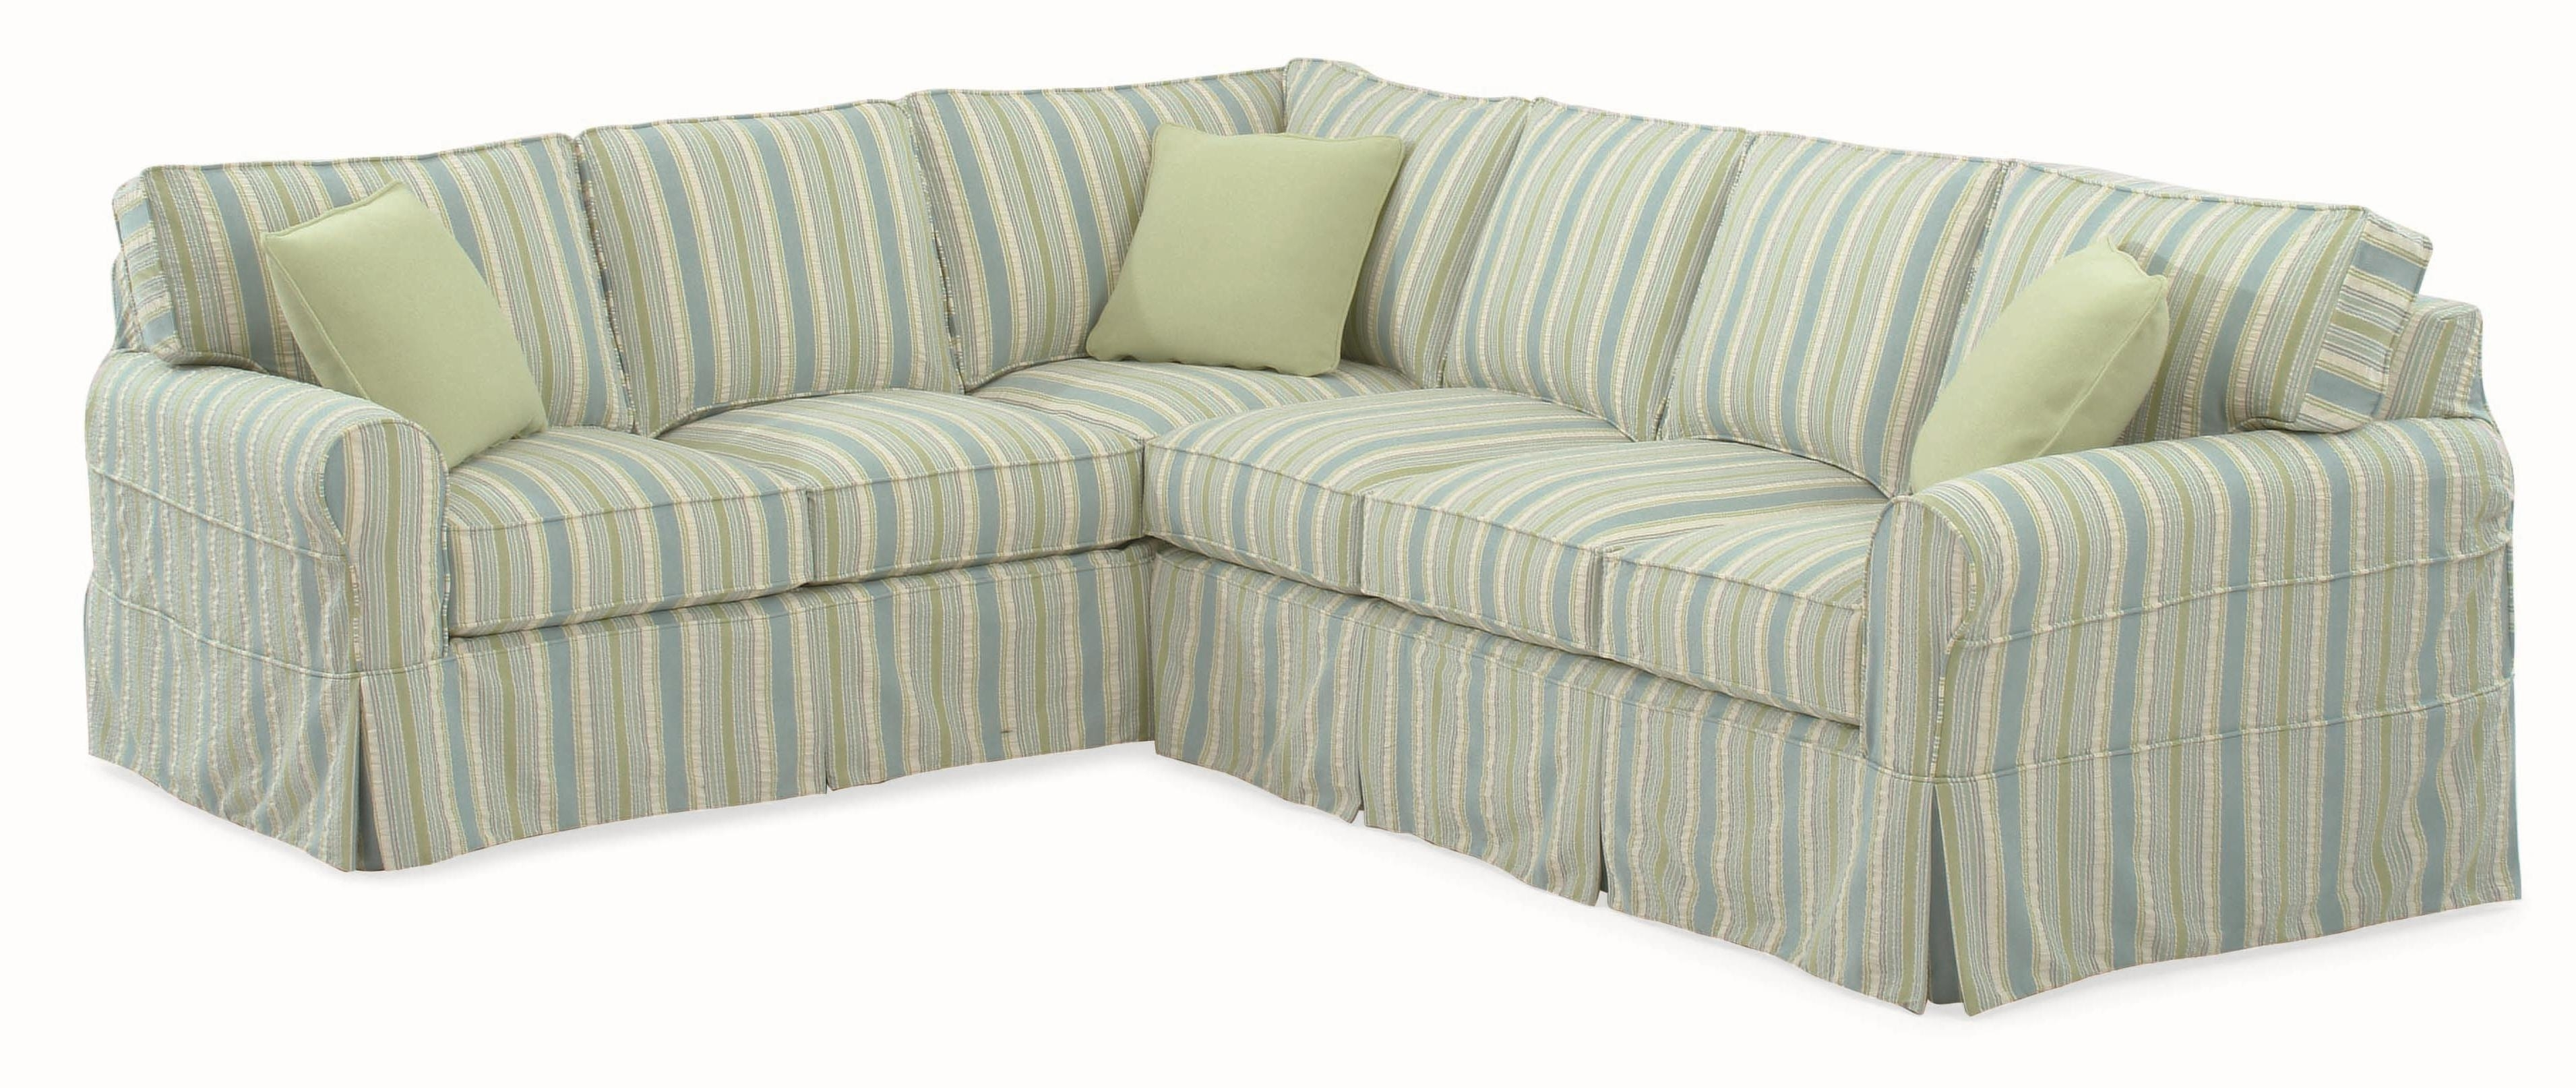 Braxton Culler 728 Casual Sectional Sofa With Rolled Arms And Pertaining To Sectional Sofas In Greenville Sc (View 10 of 10)